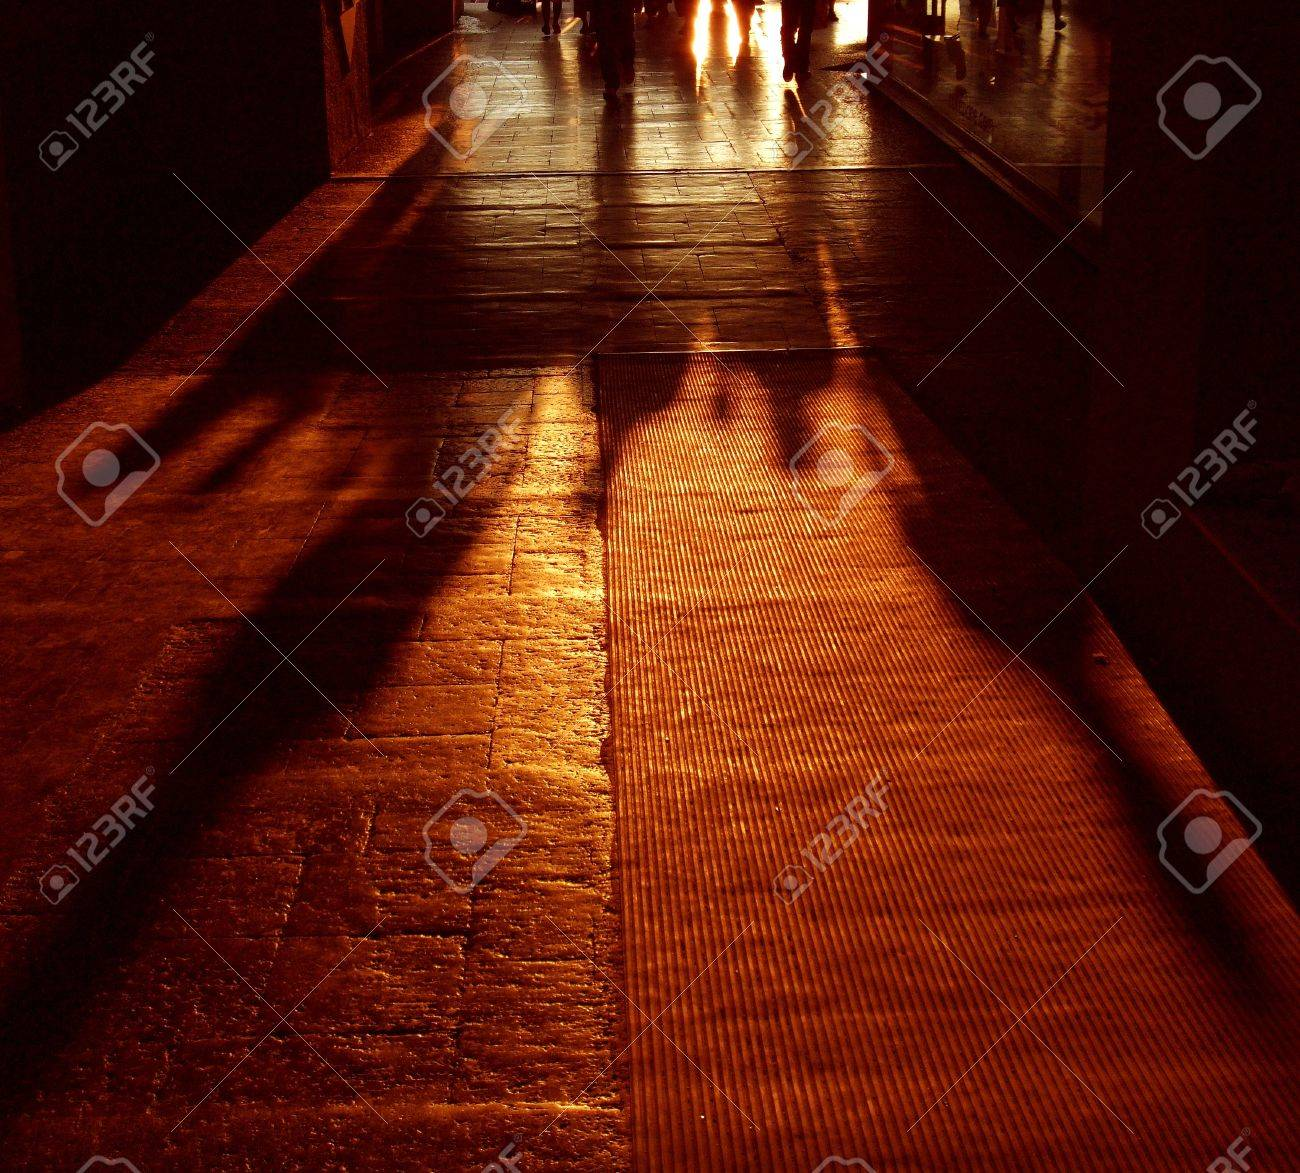 Shadows of Walking People in Sunset Stock Photo - 8621419